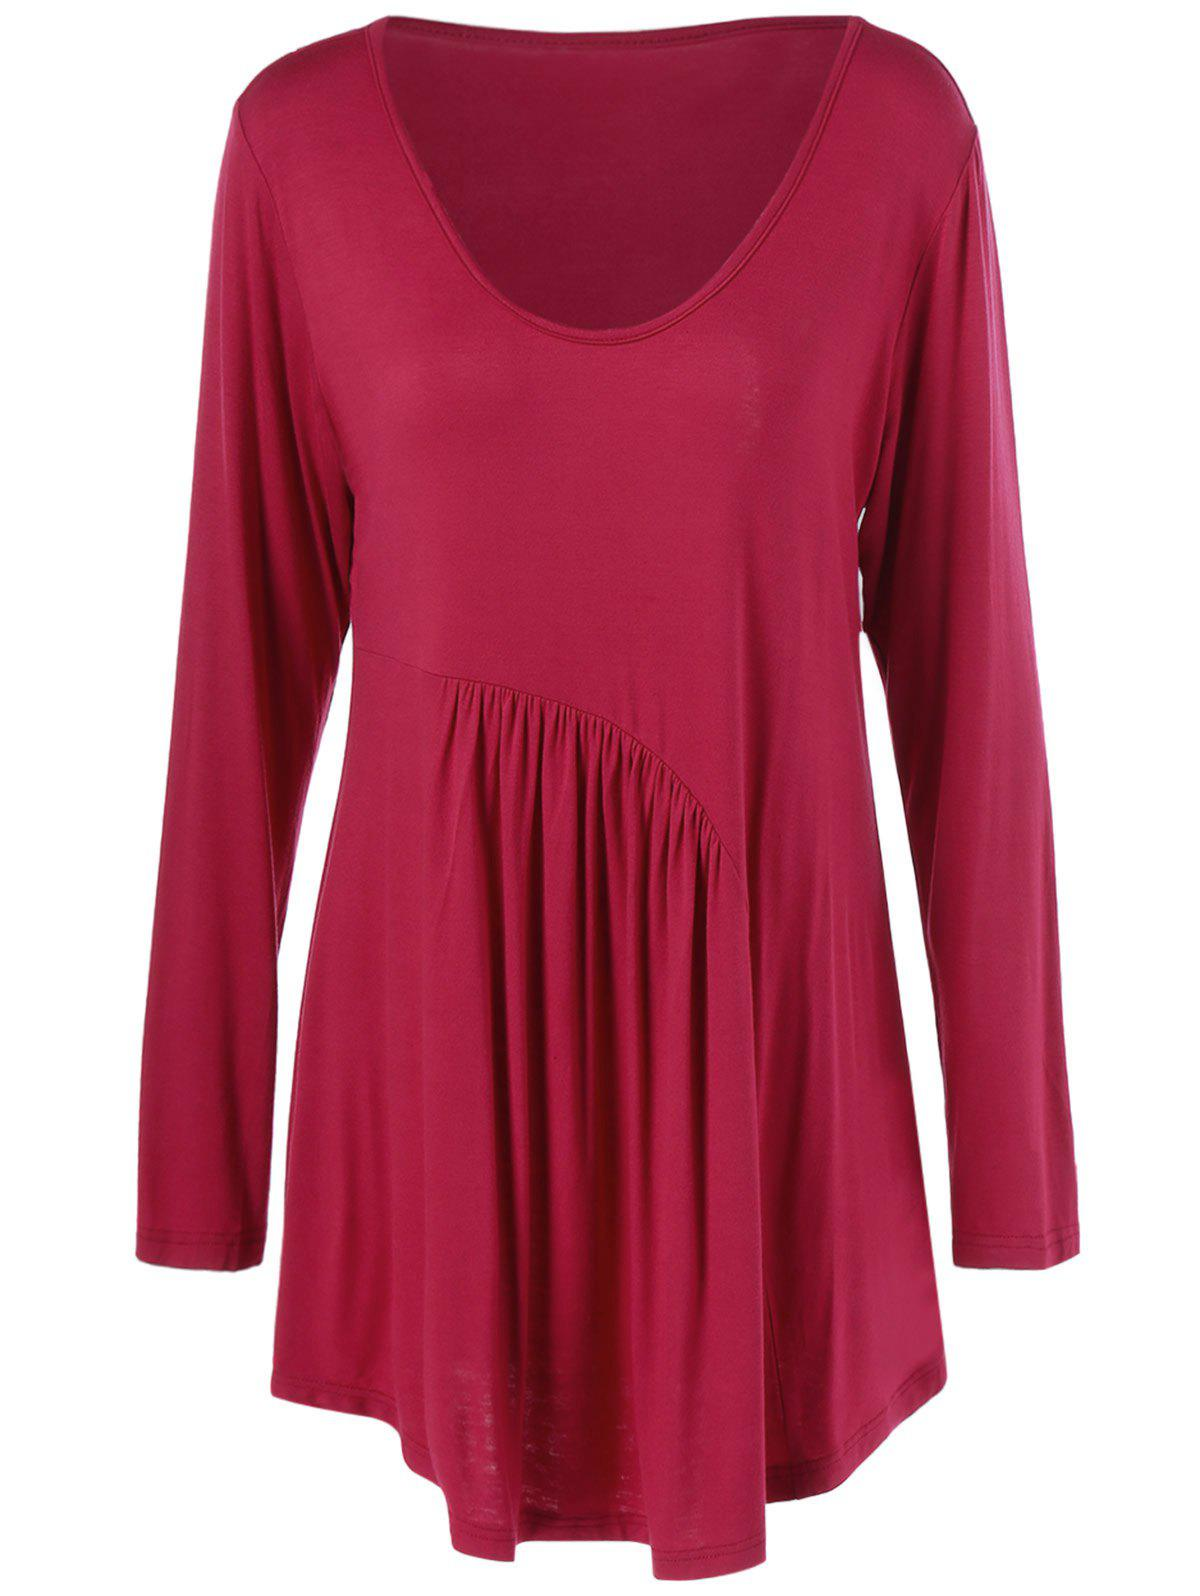 Pleated Plus Size Tunic T-ShirtWomen<br><br><br>Size: 5XL<br>Color: RED